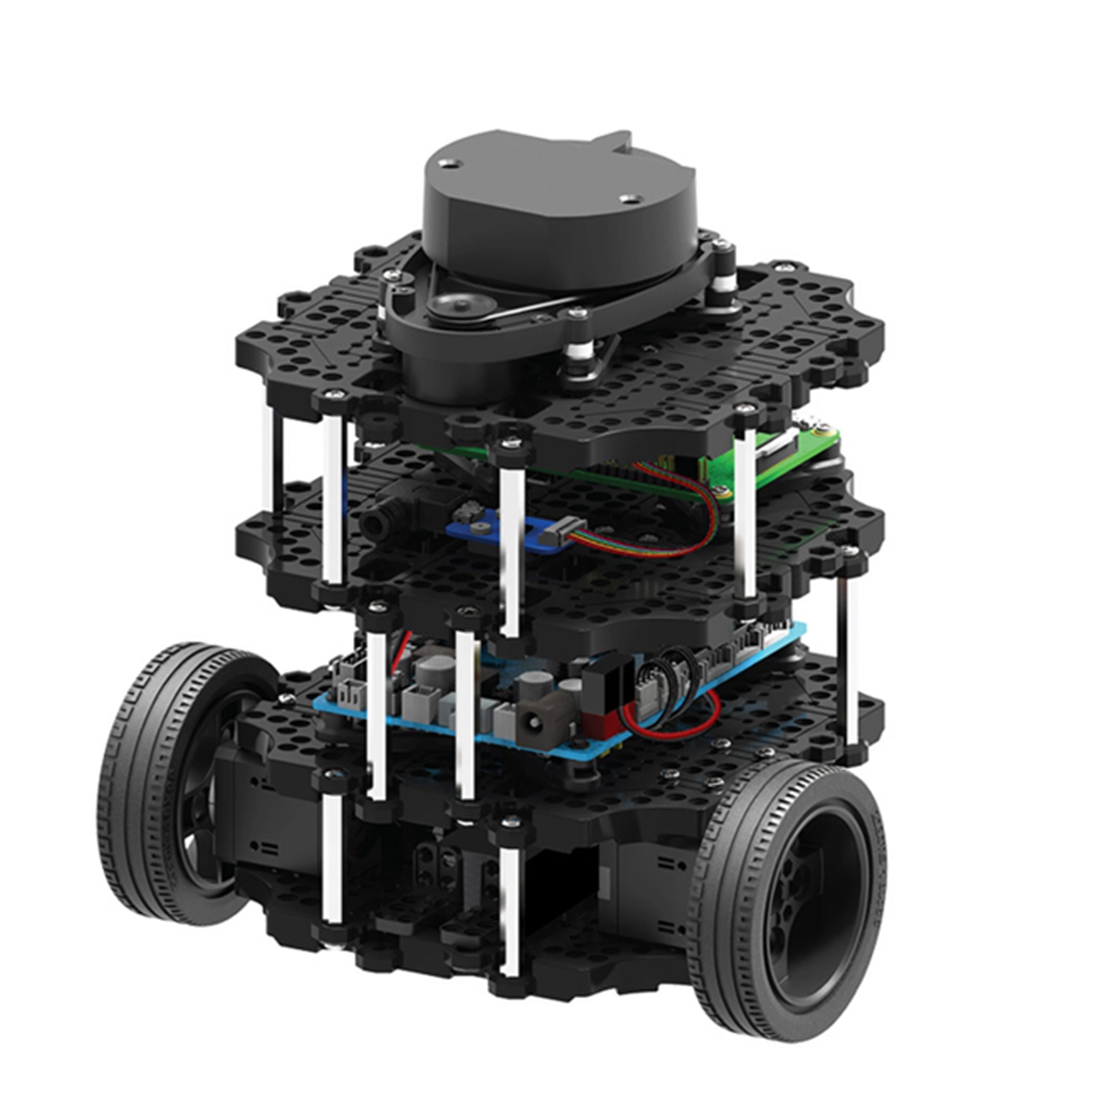 Surwish Programmable ROS Robot Automatic Navigation SLAM Car Turtlebot3-Burger Pi3 Kit Programmable Toys For Kids Adults Gift